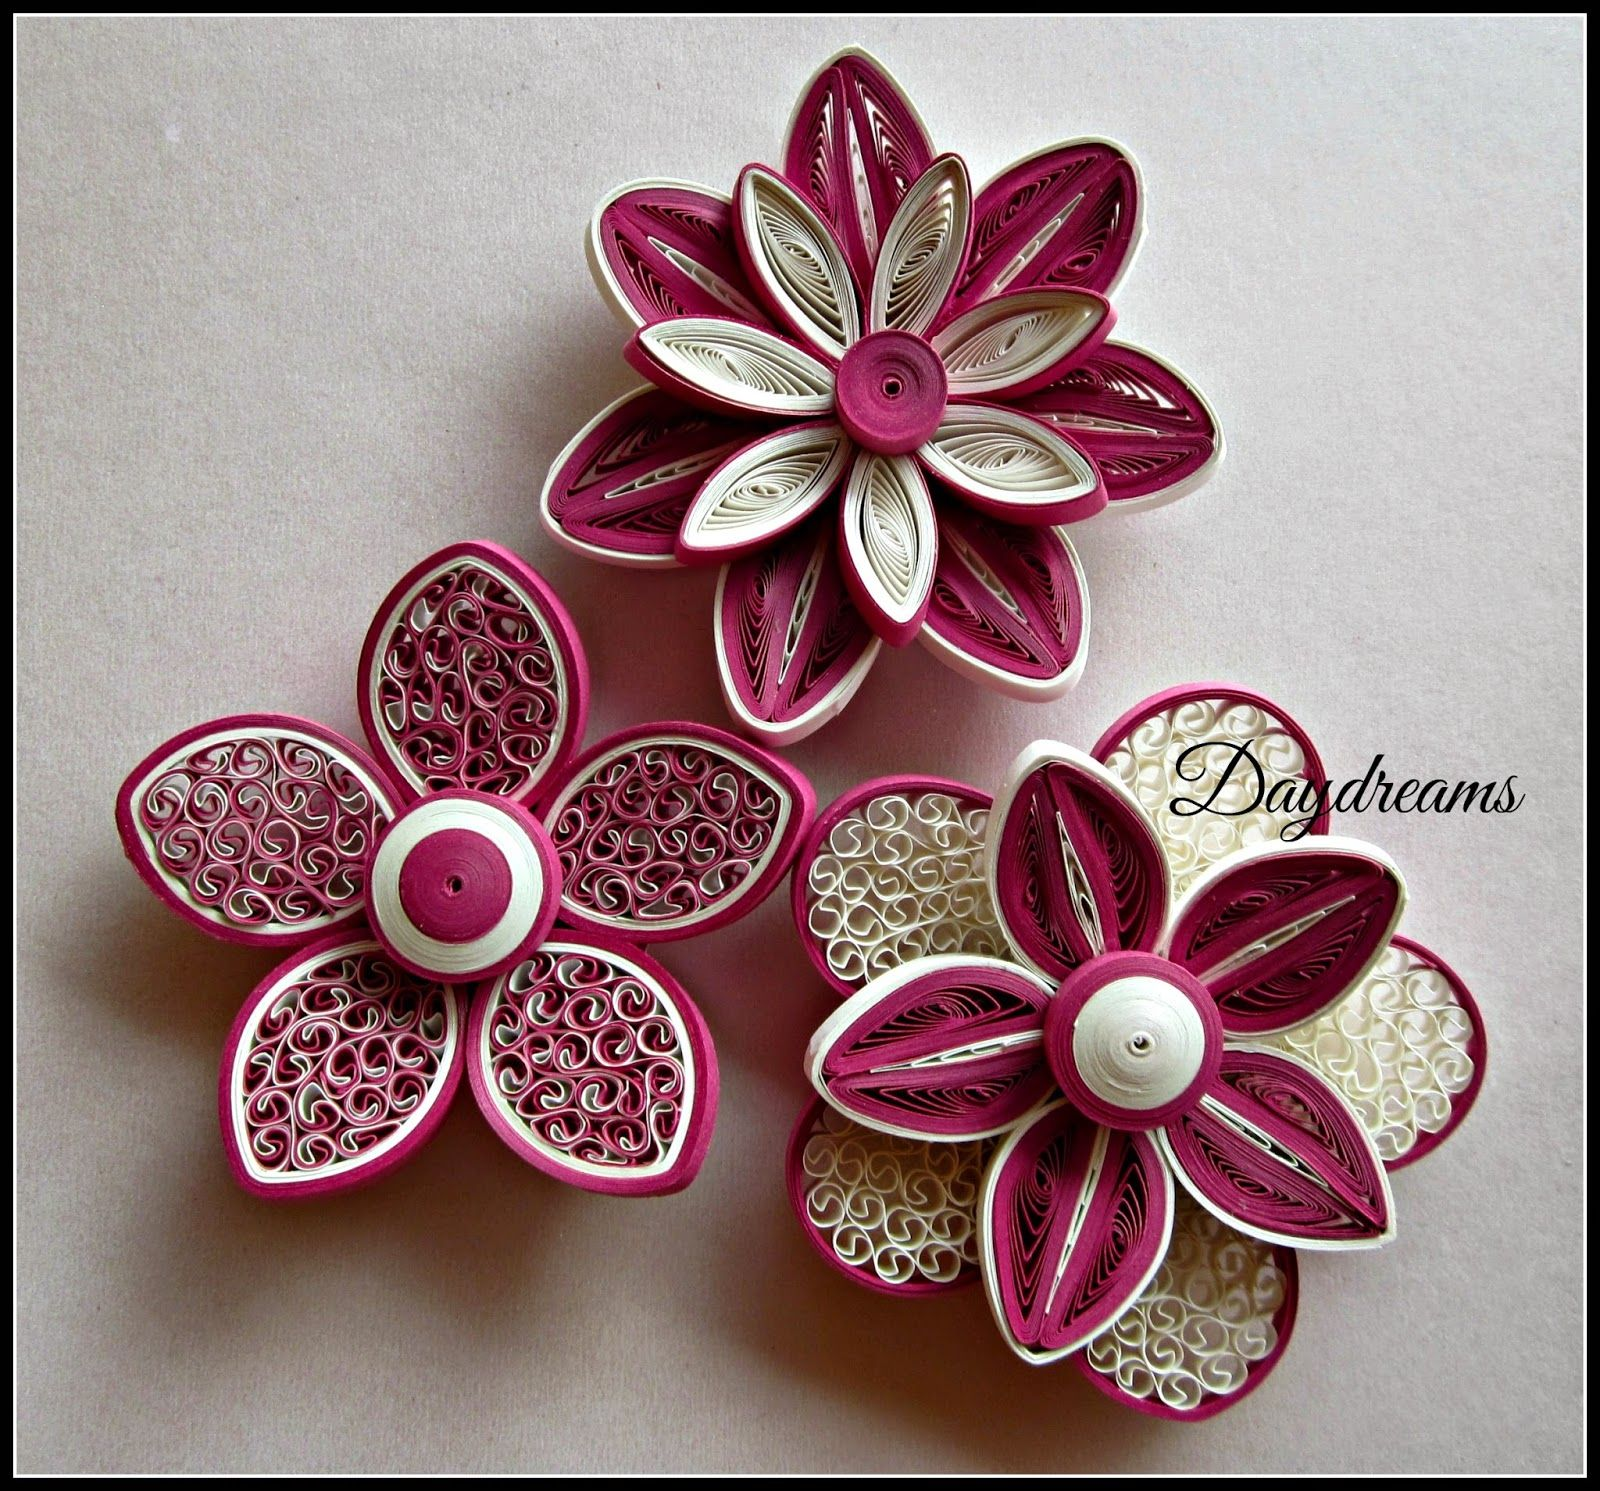 Pin By Dona On Quelling Pinterest Daydream Quilling And Flower